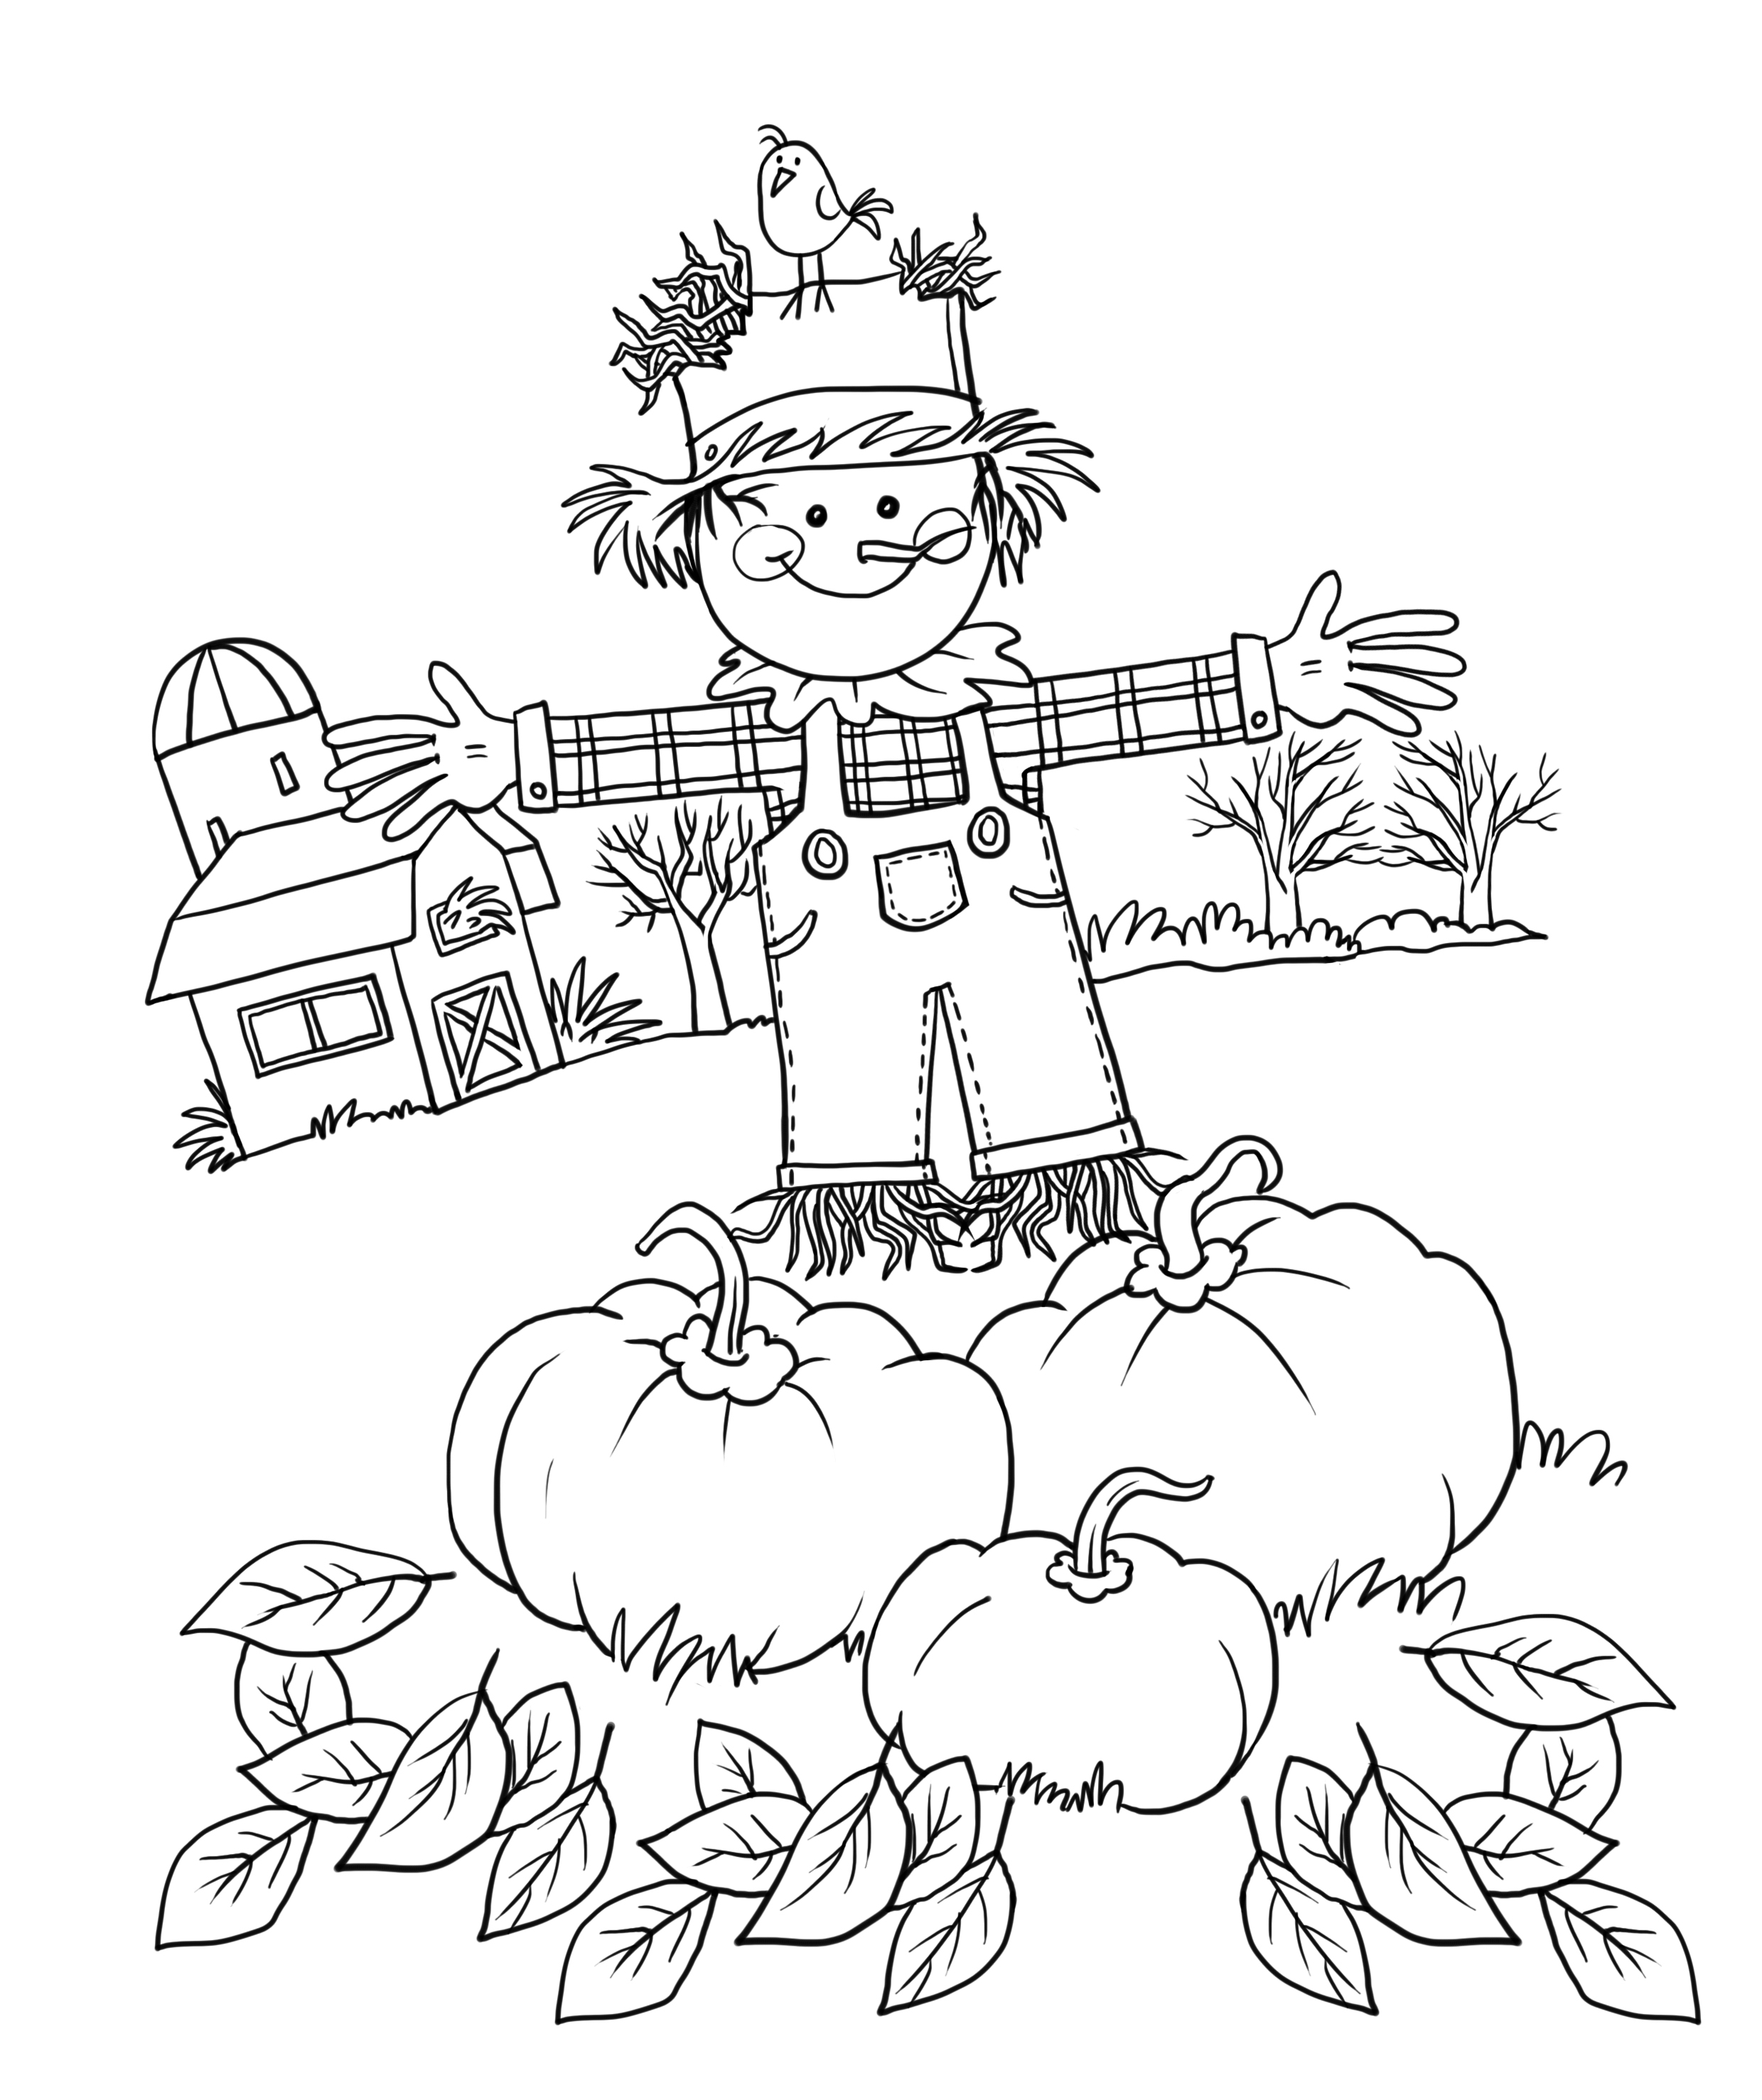 autumn fall coloring page free fall coloring pages for adults - Fall Coloring Pages For Kids